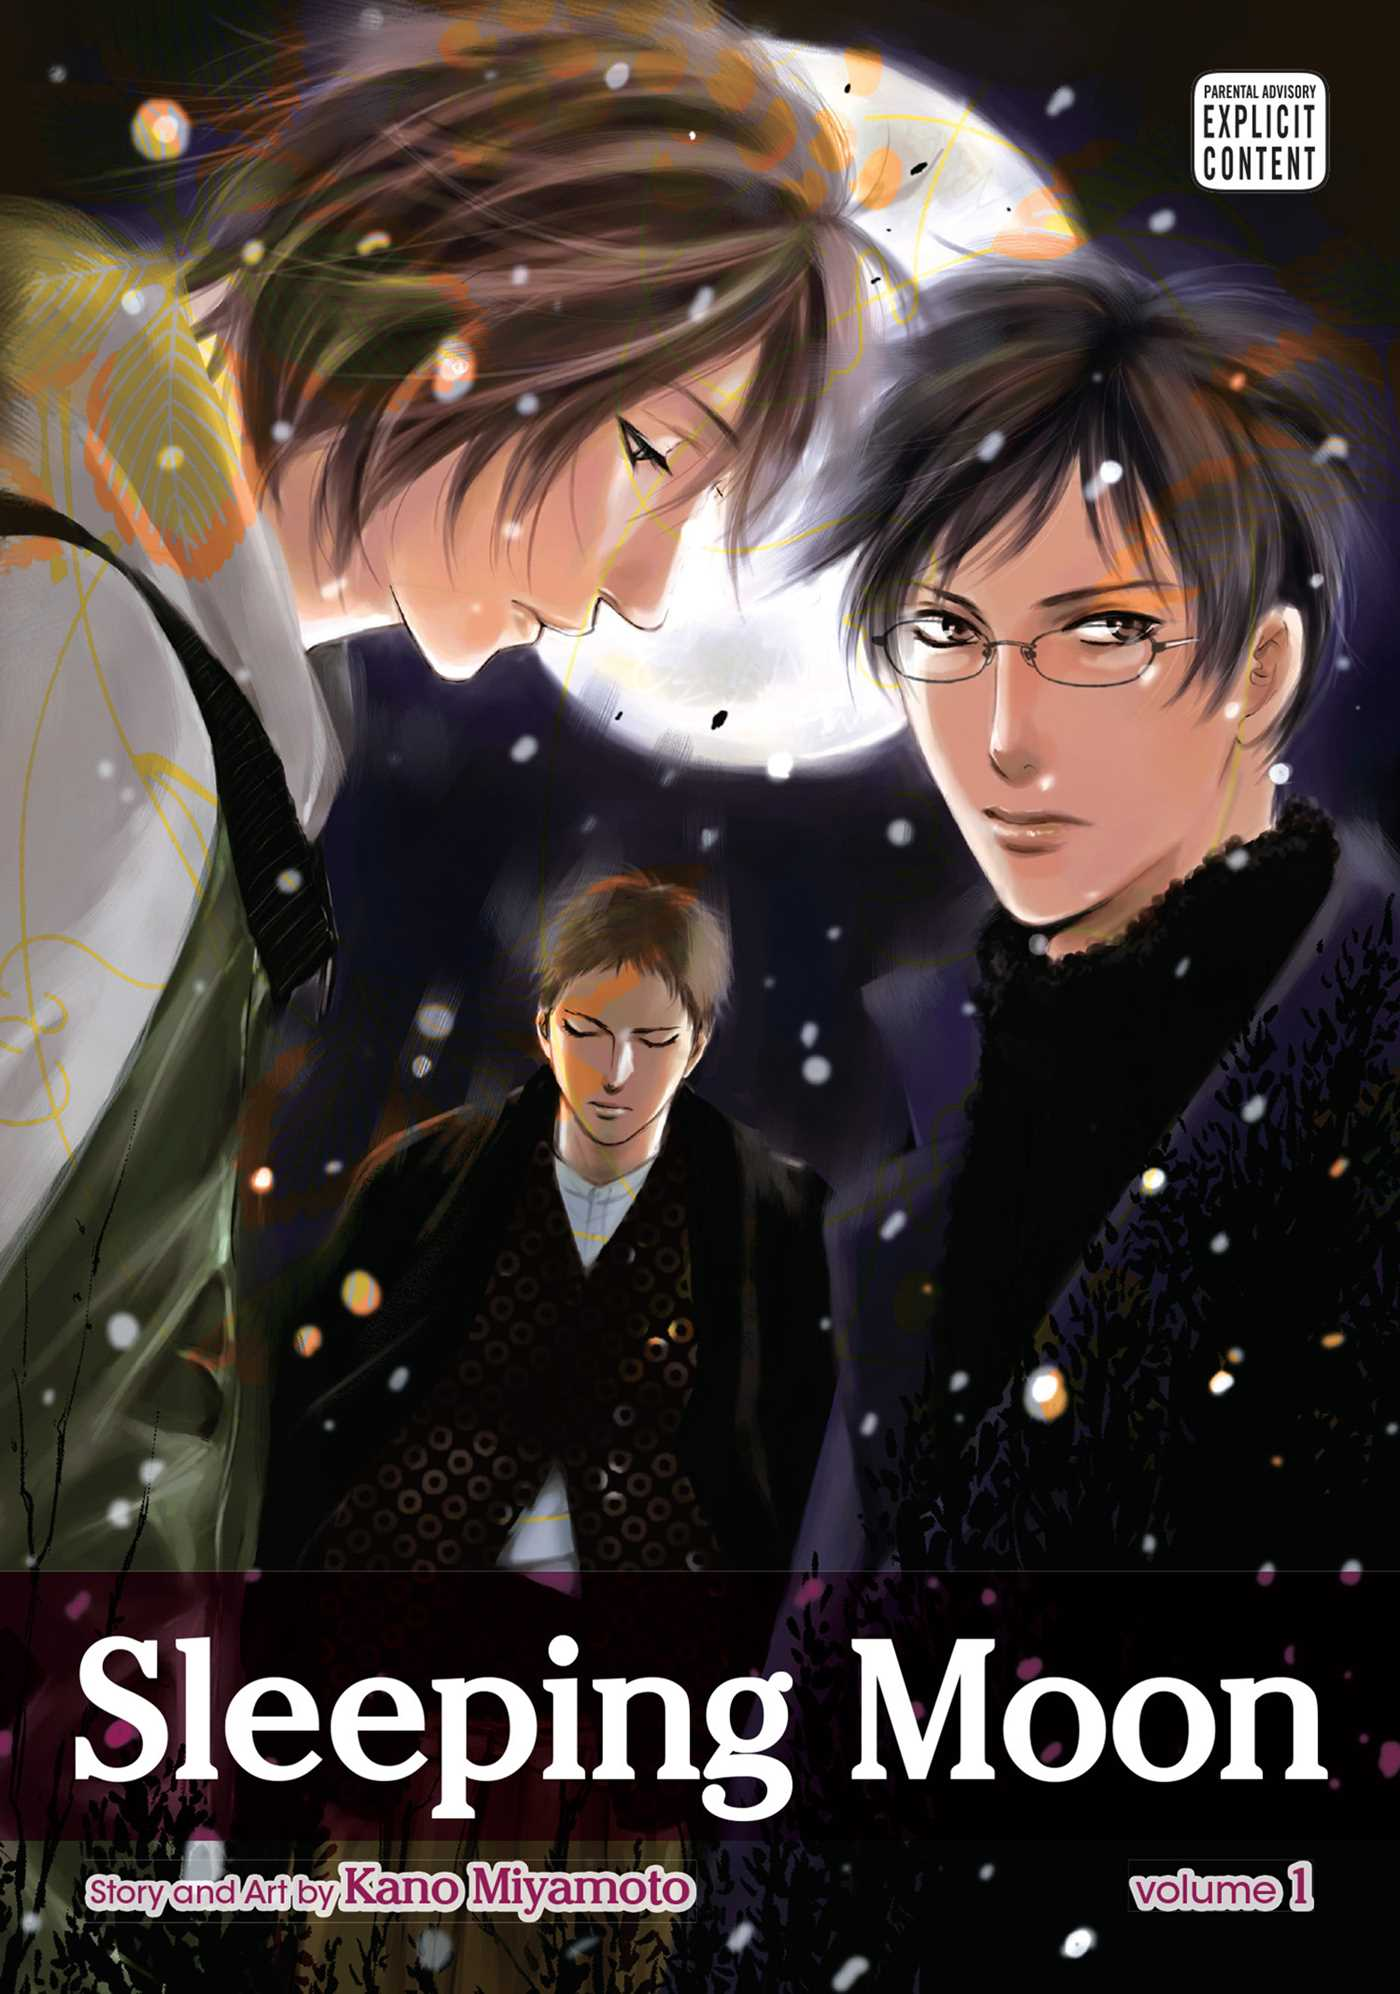 Sleeping moon vol 1 9781421555508 hr